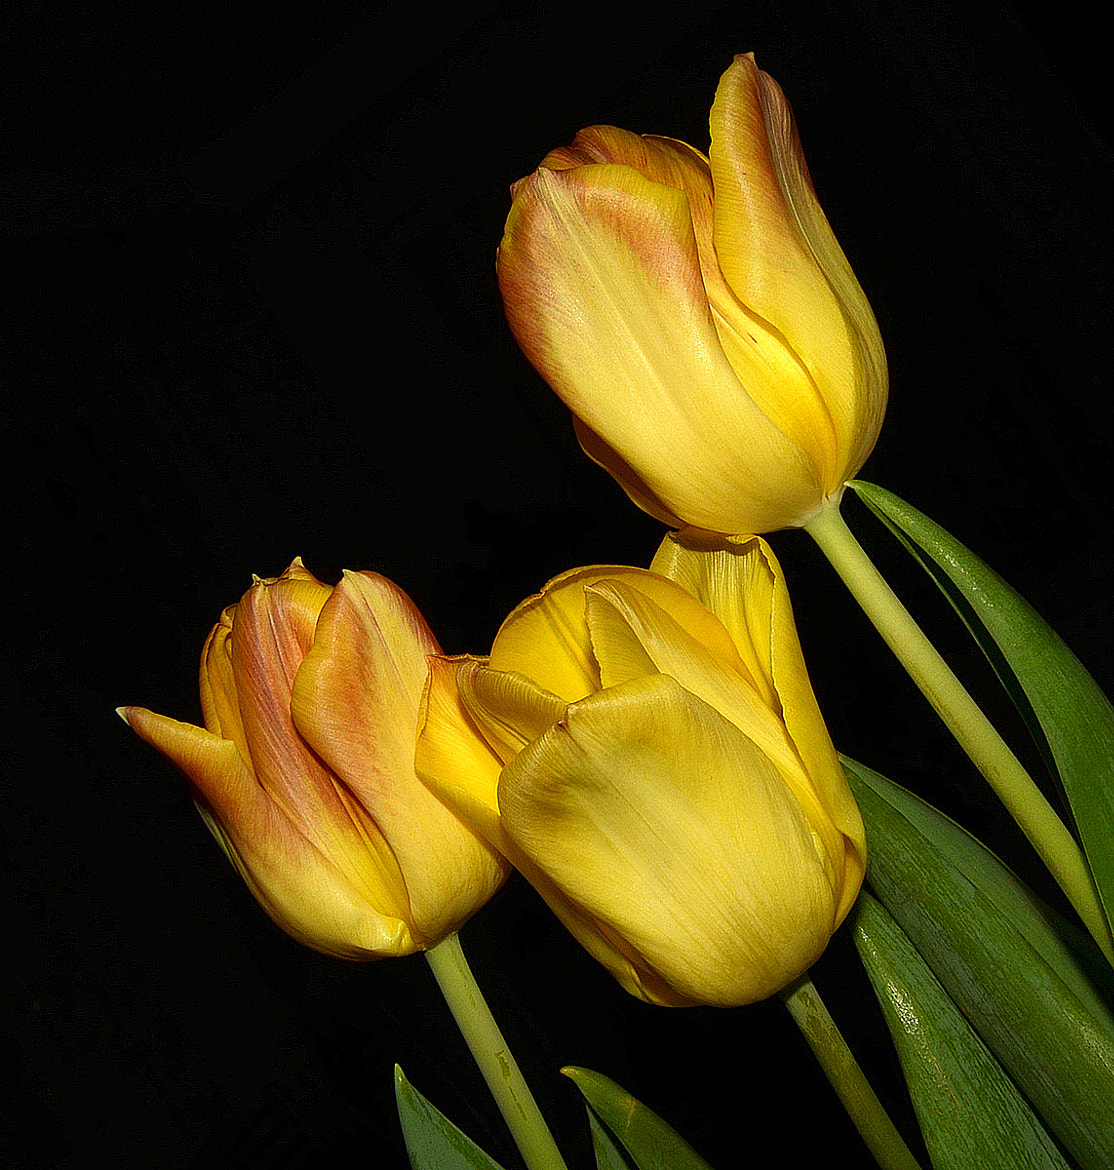 Photograph Tulip for friendship by Nazia di on 500px